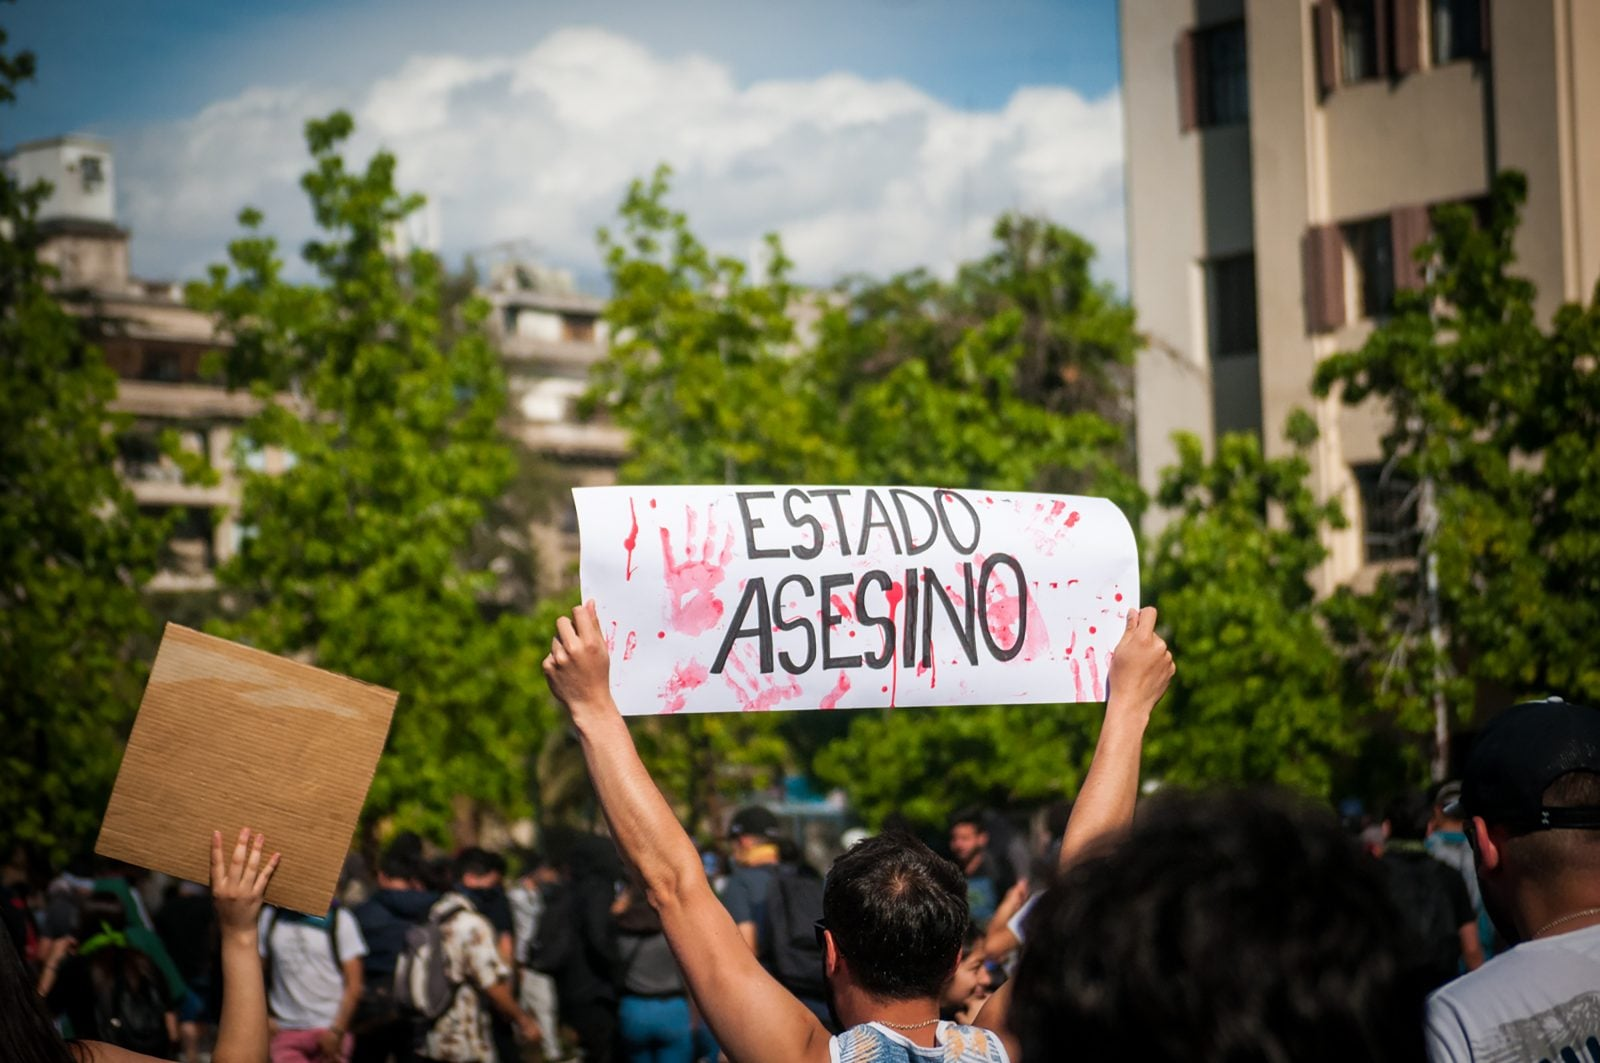 Chilean photojournalist found dead amidst the protests